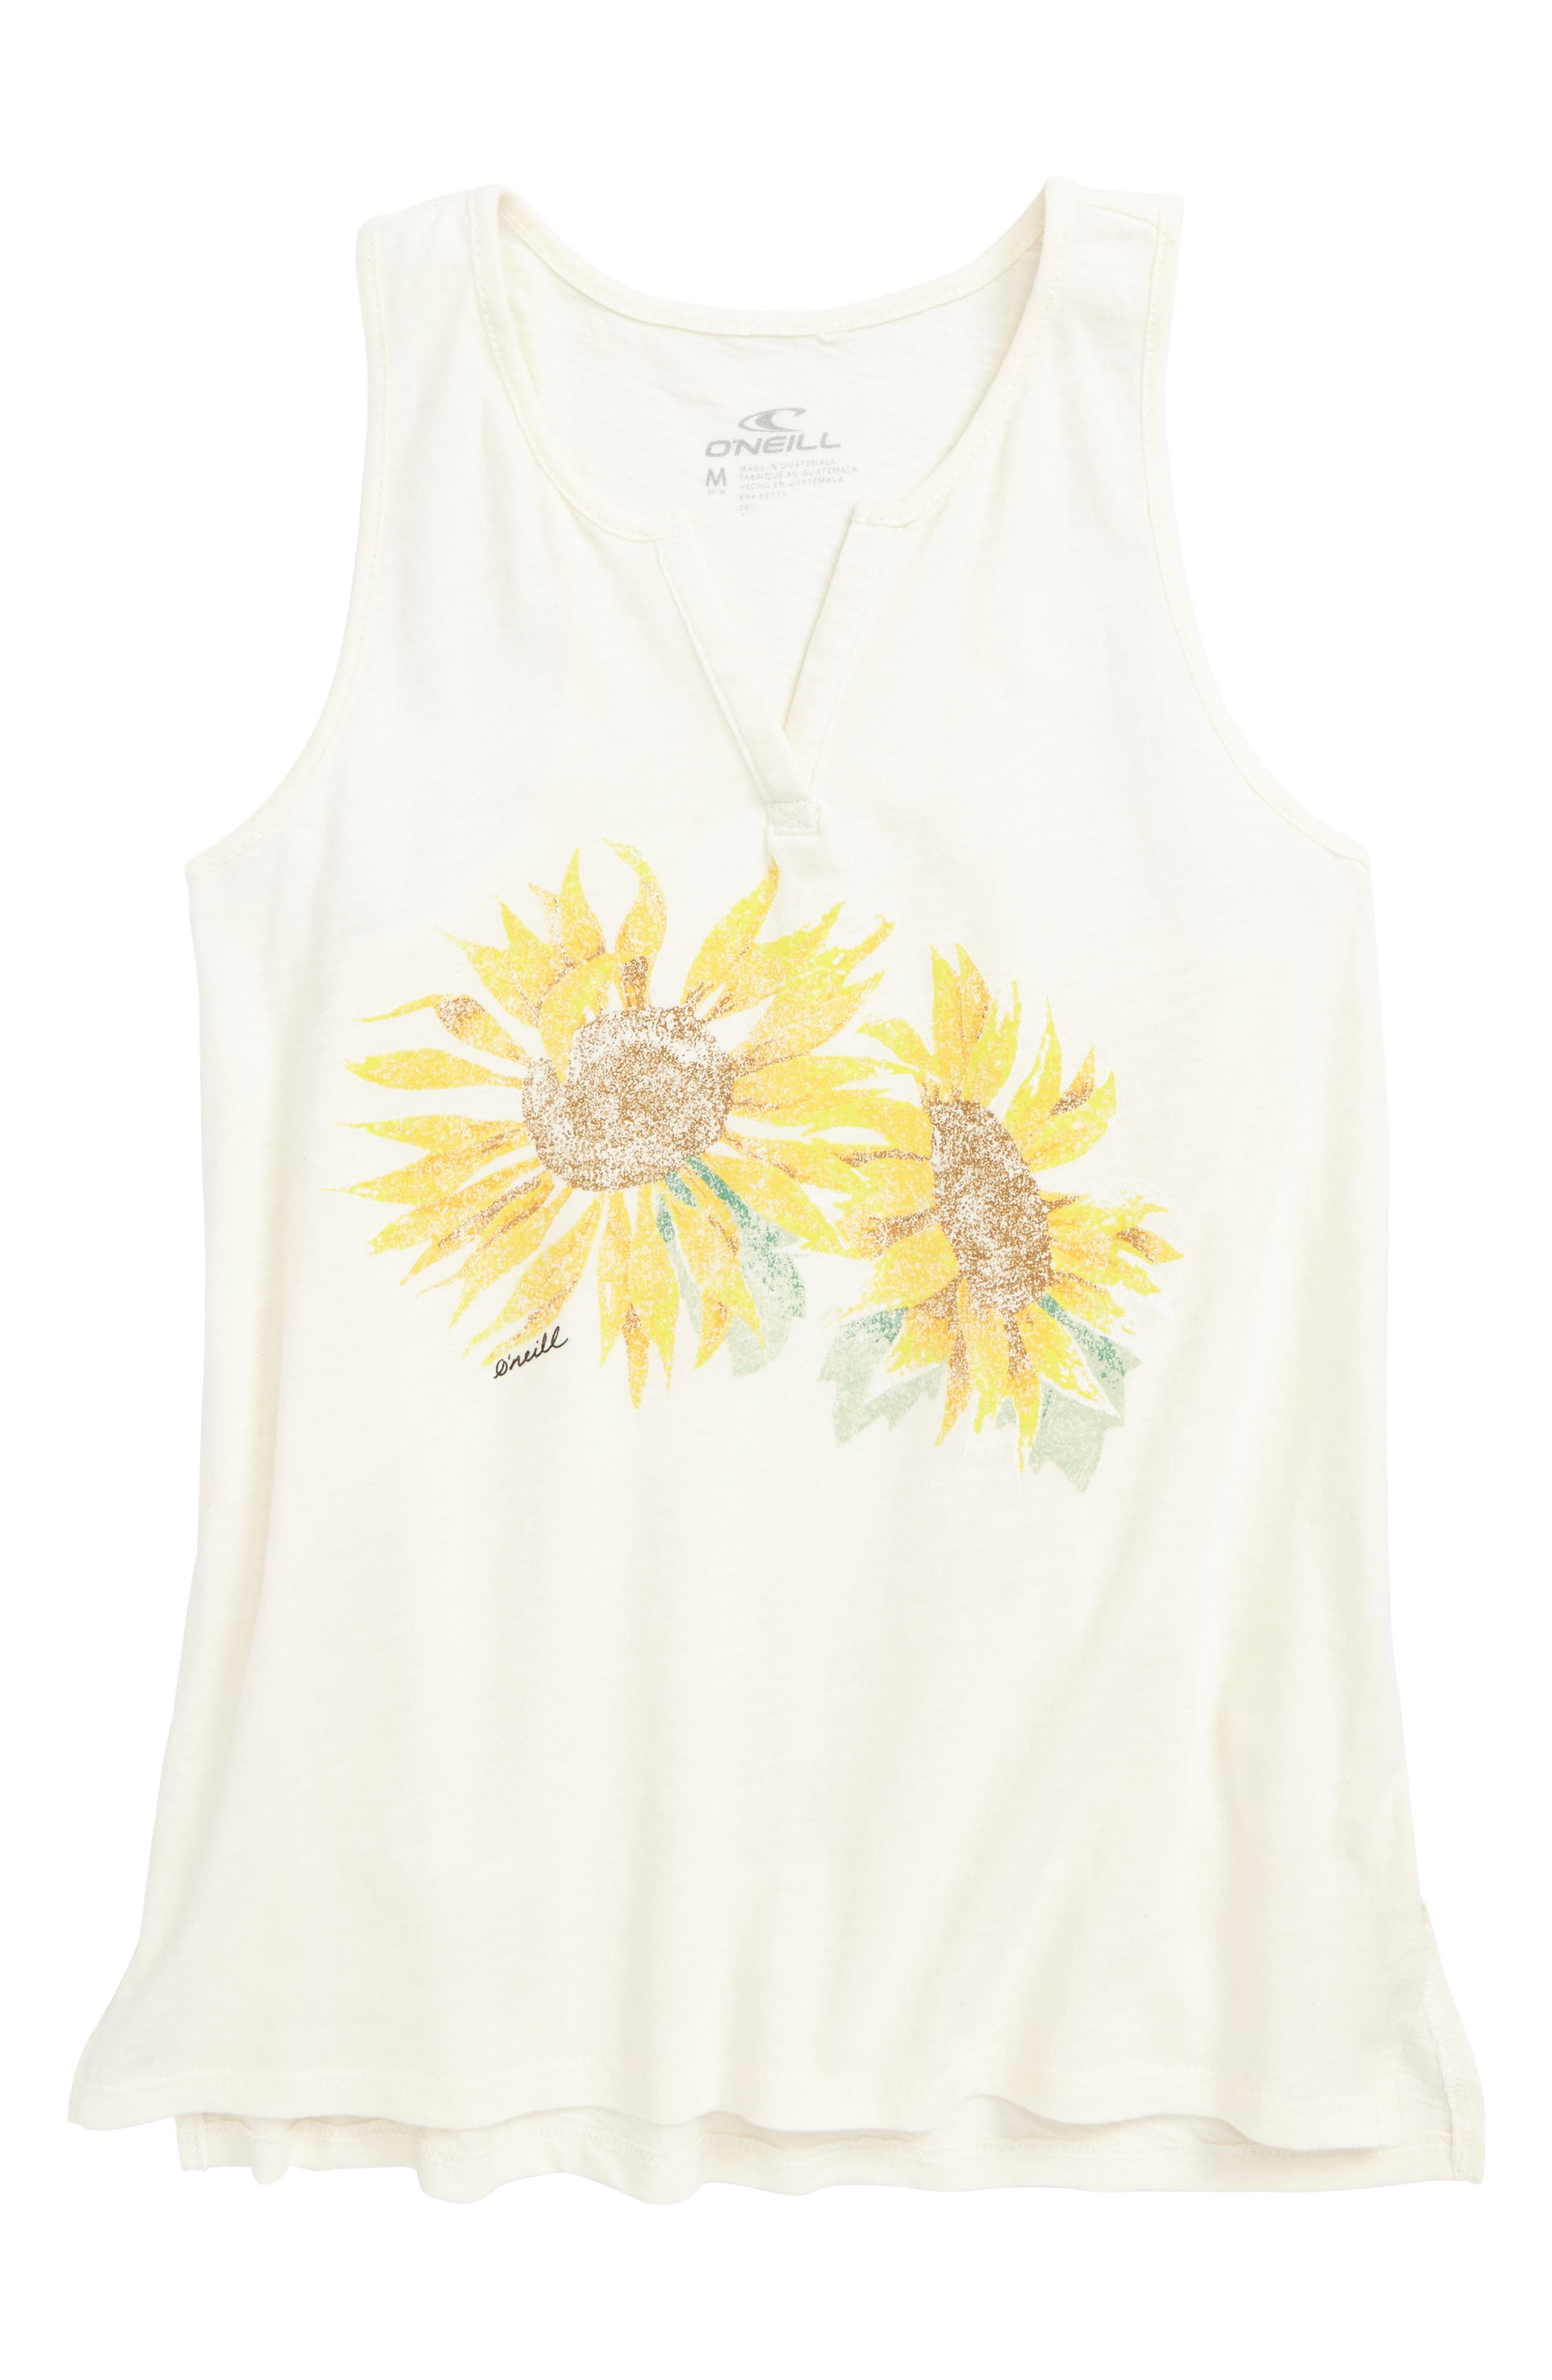 O'NEILL Soleil Graphic Tank, Main, color, 250